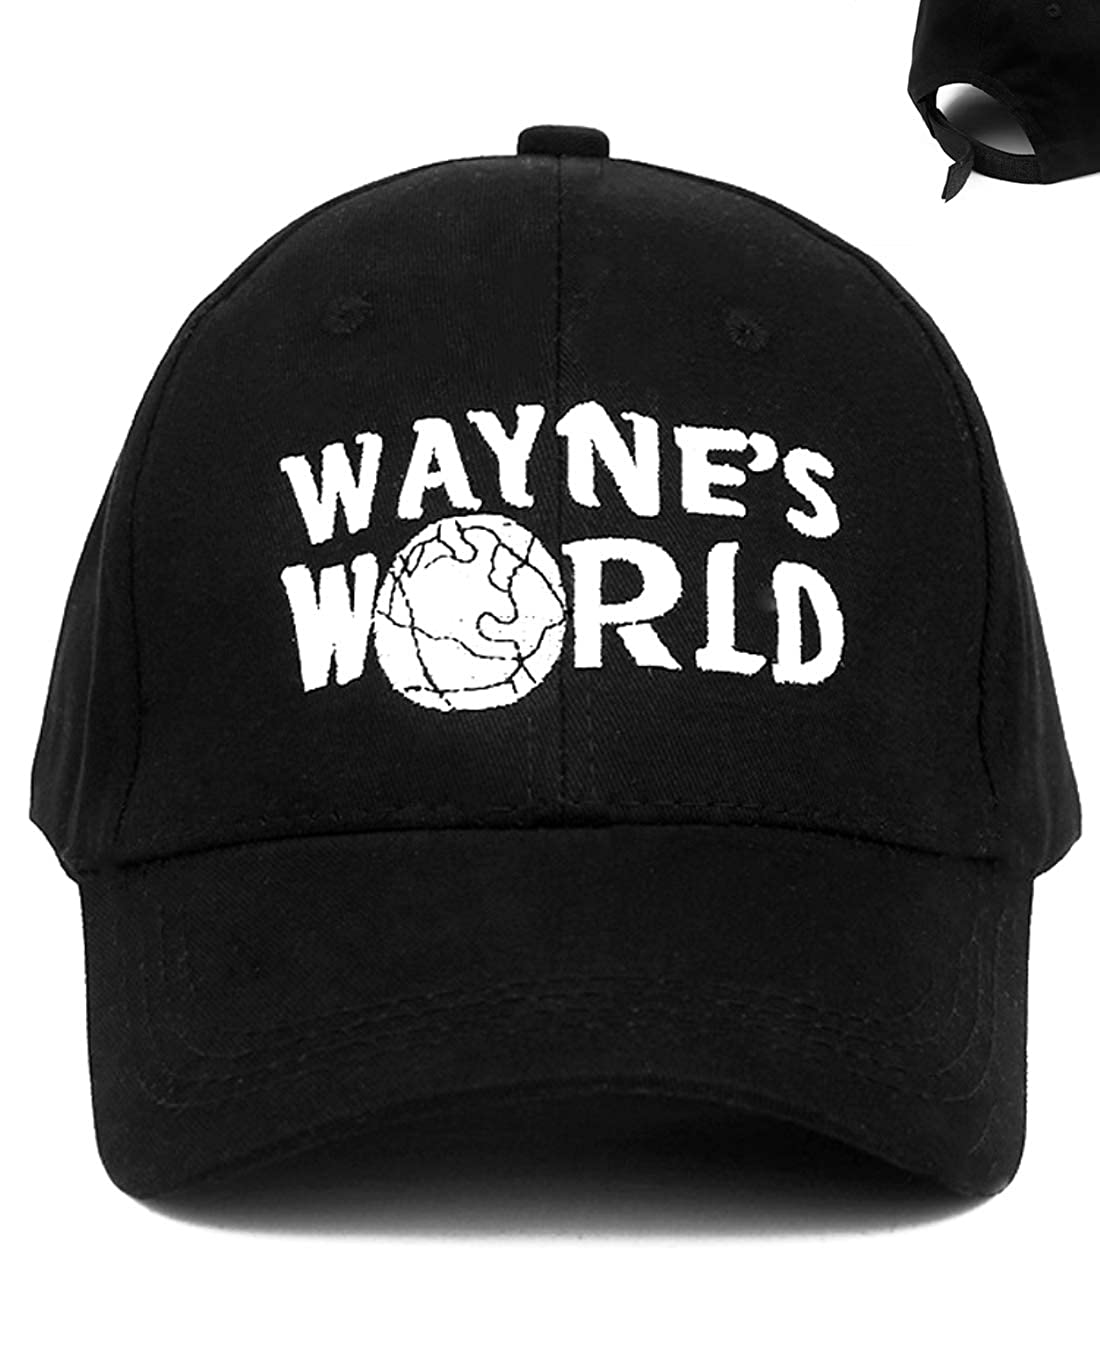 Fudirect Store Wayne's World Hat, Trucker Embroidered Costume Baseball Hat Cap Adjustable Black for Women, Men, Child and Youth(Cotton)